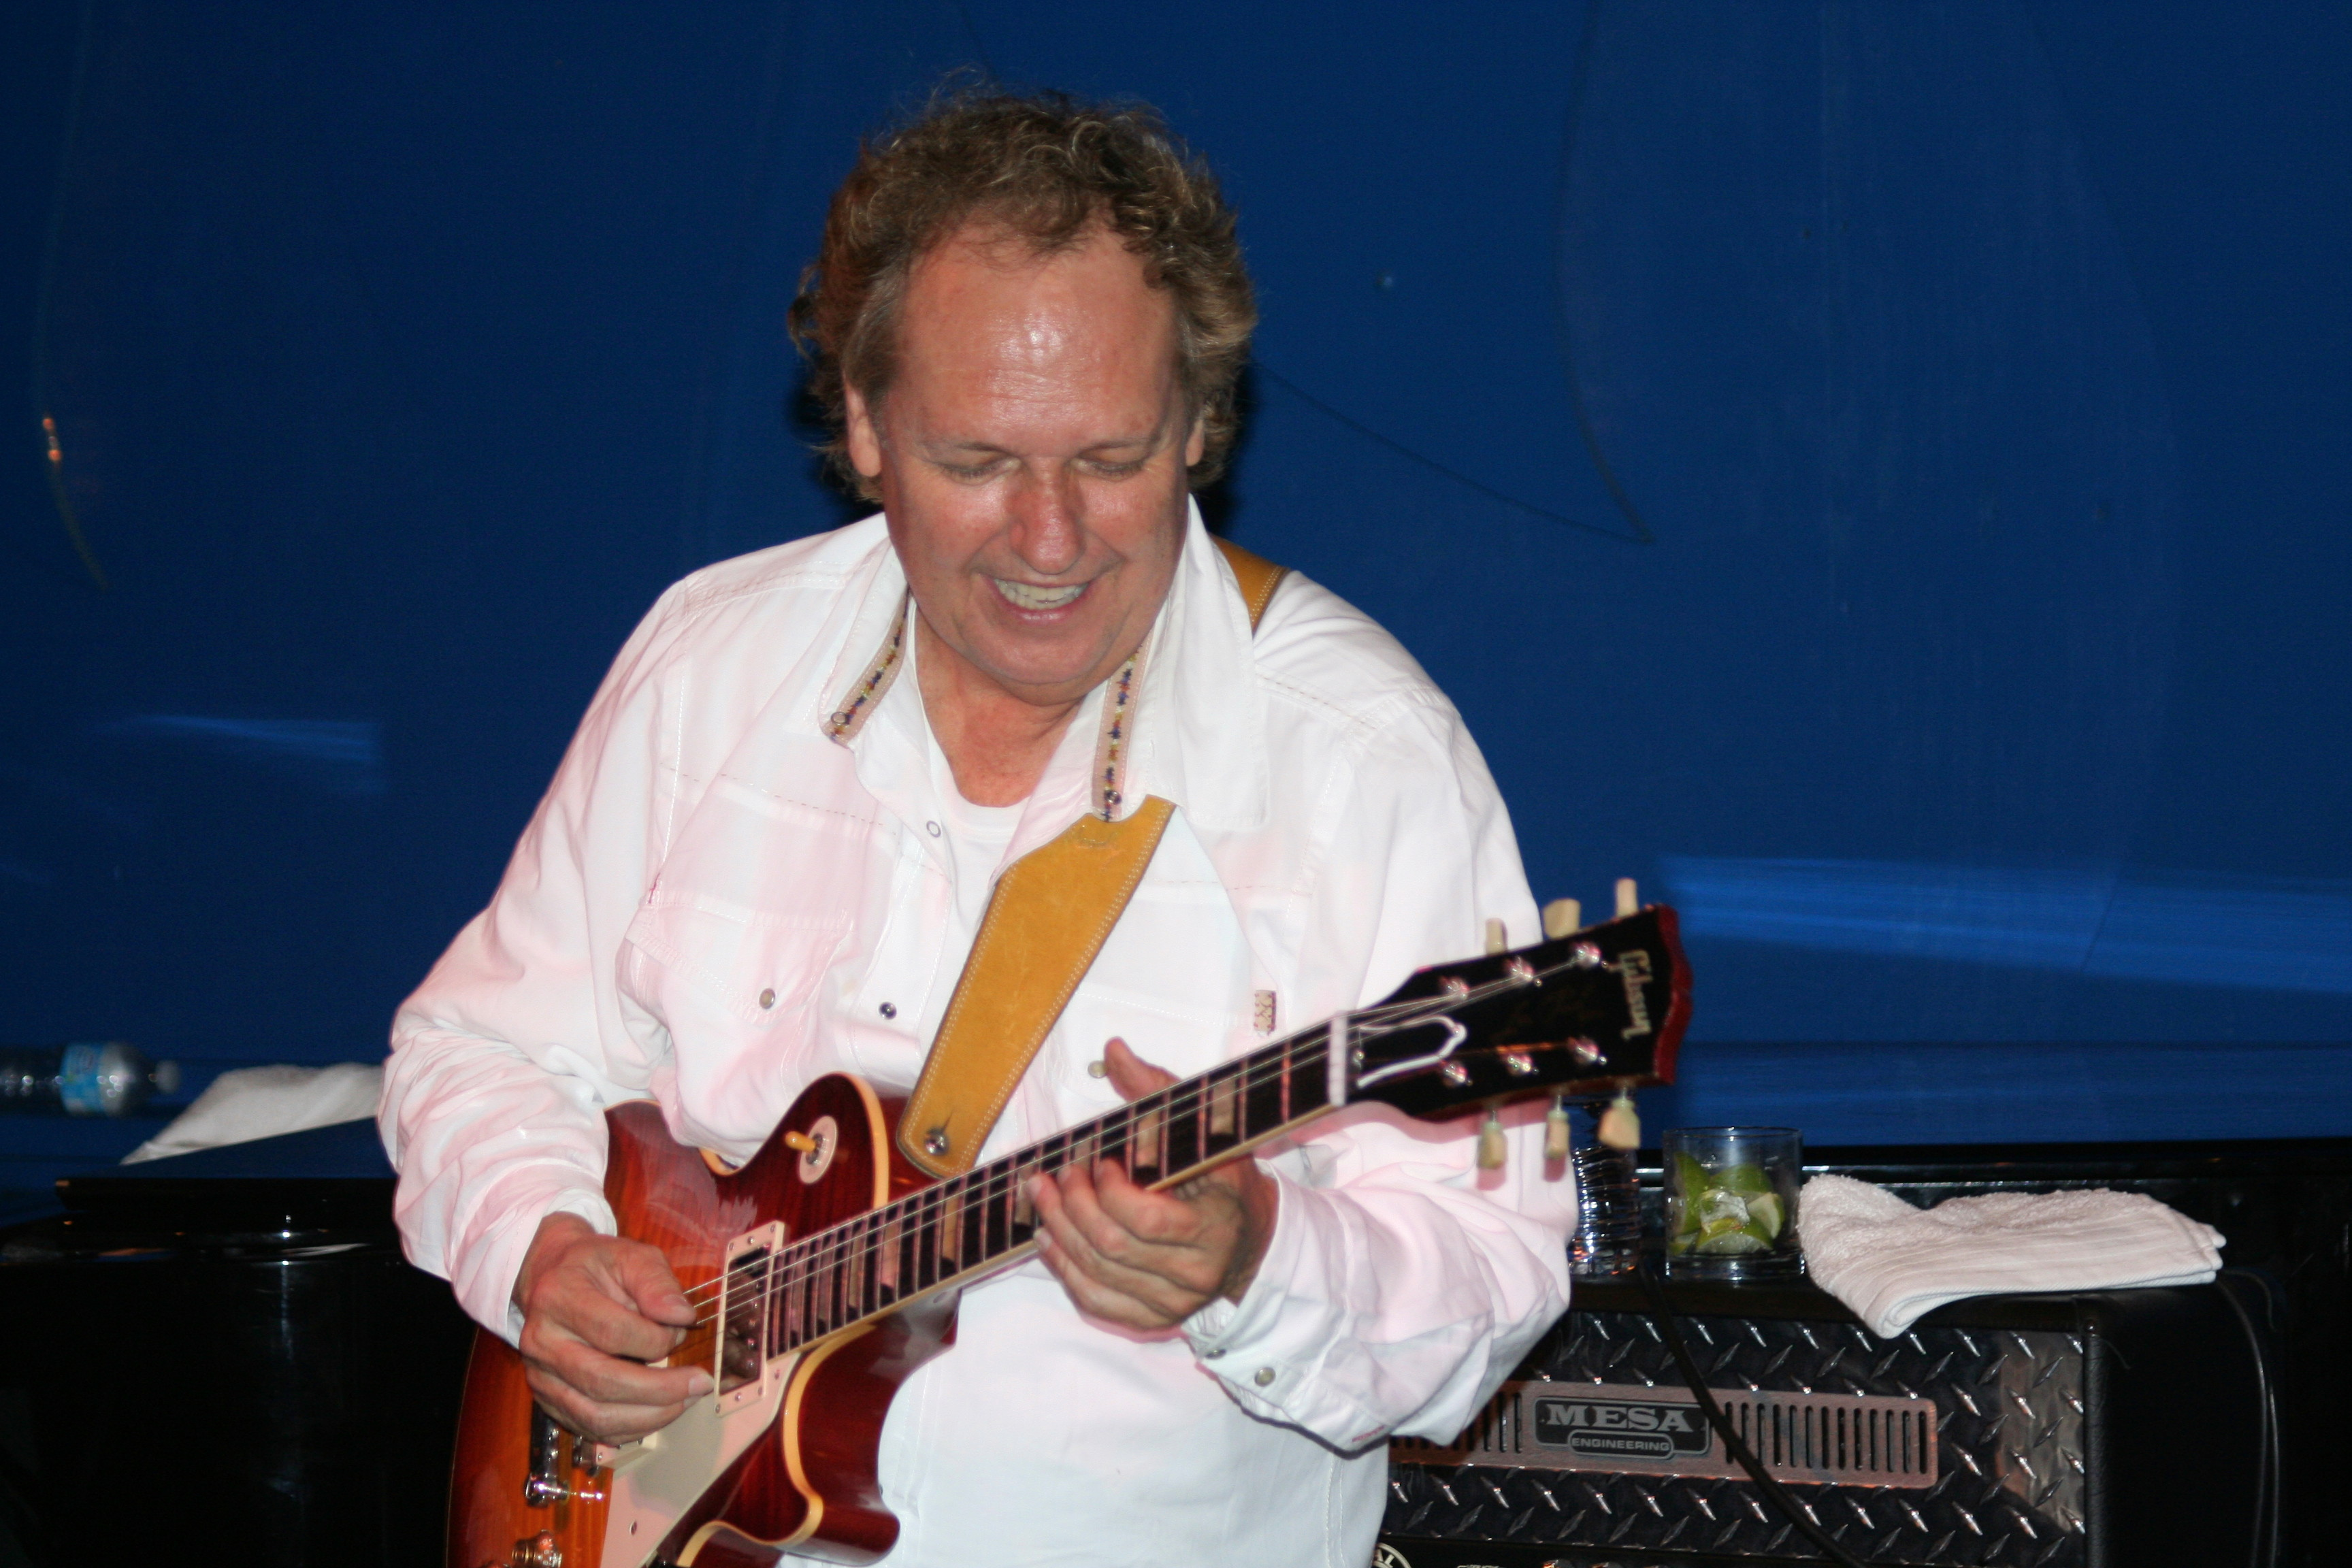 Lee ritenour band @ jazz kitchen 2013